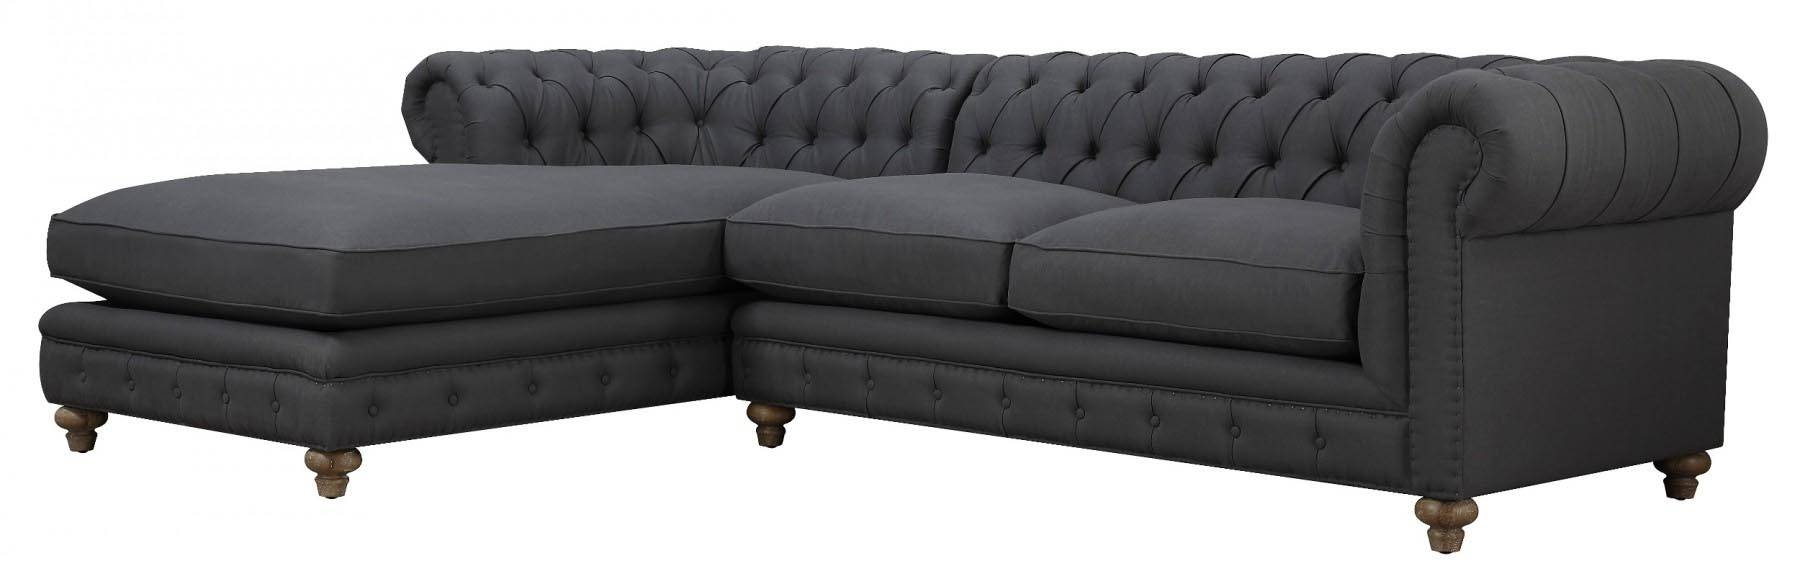 The Bay Sectional Sofa - Leather Sectional Sofa with The Bay Sofas (Image 22 of 25)